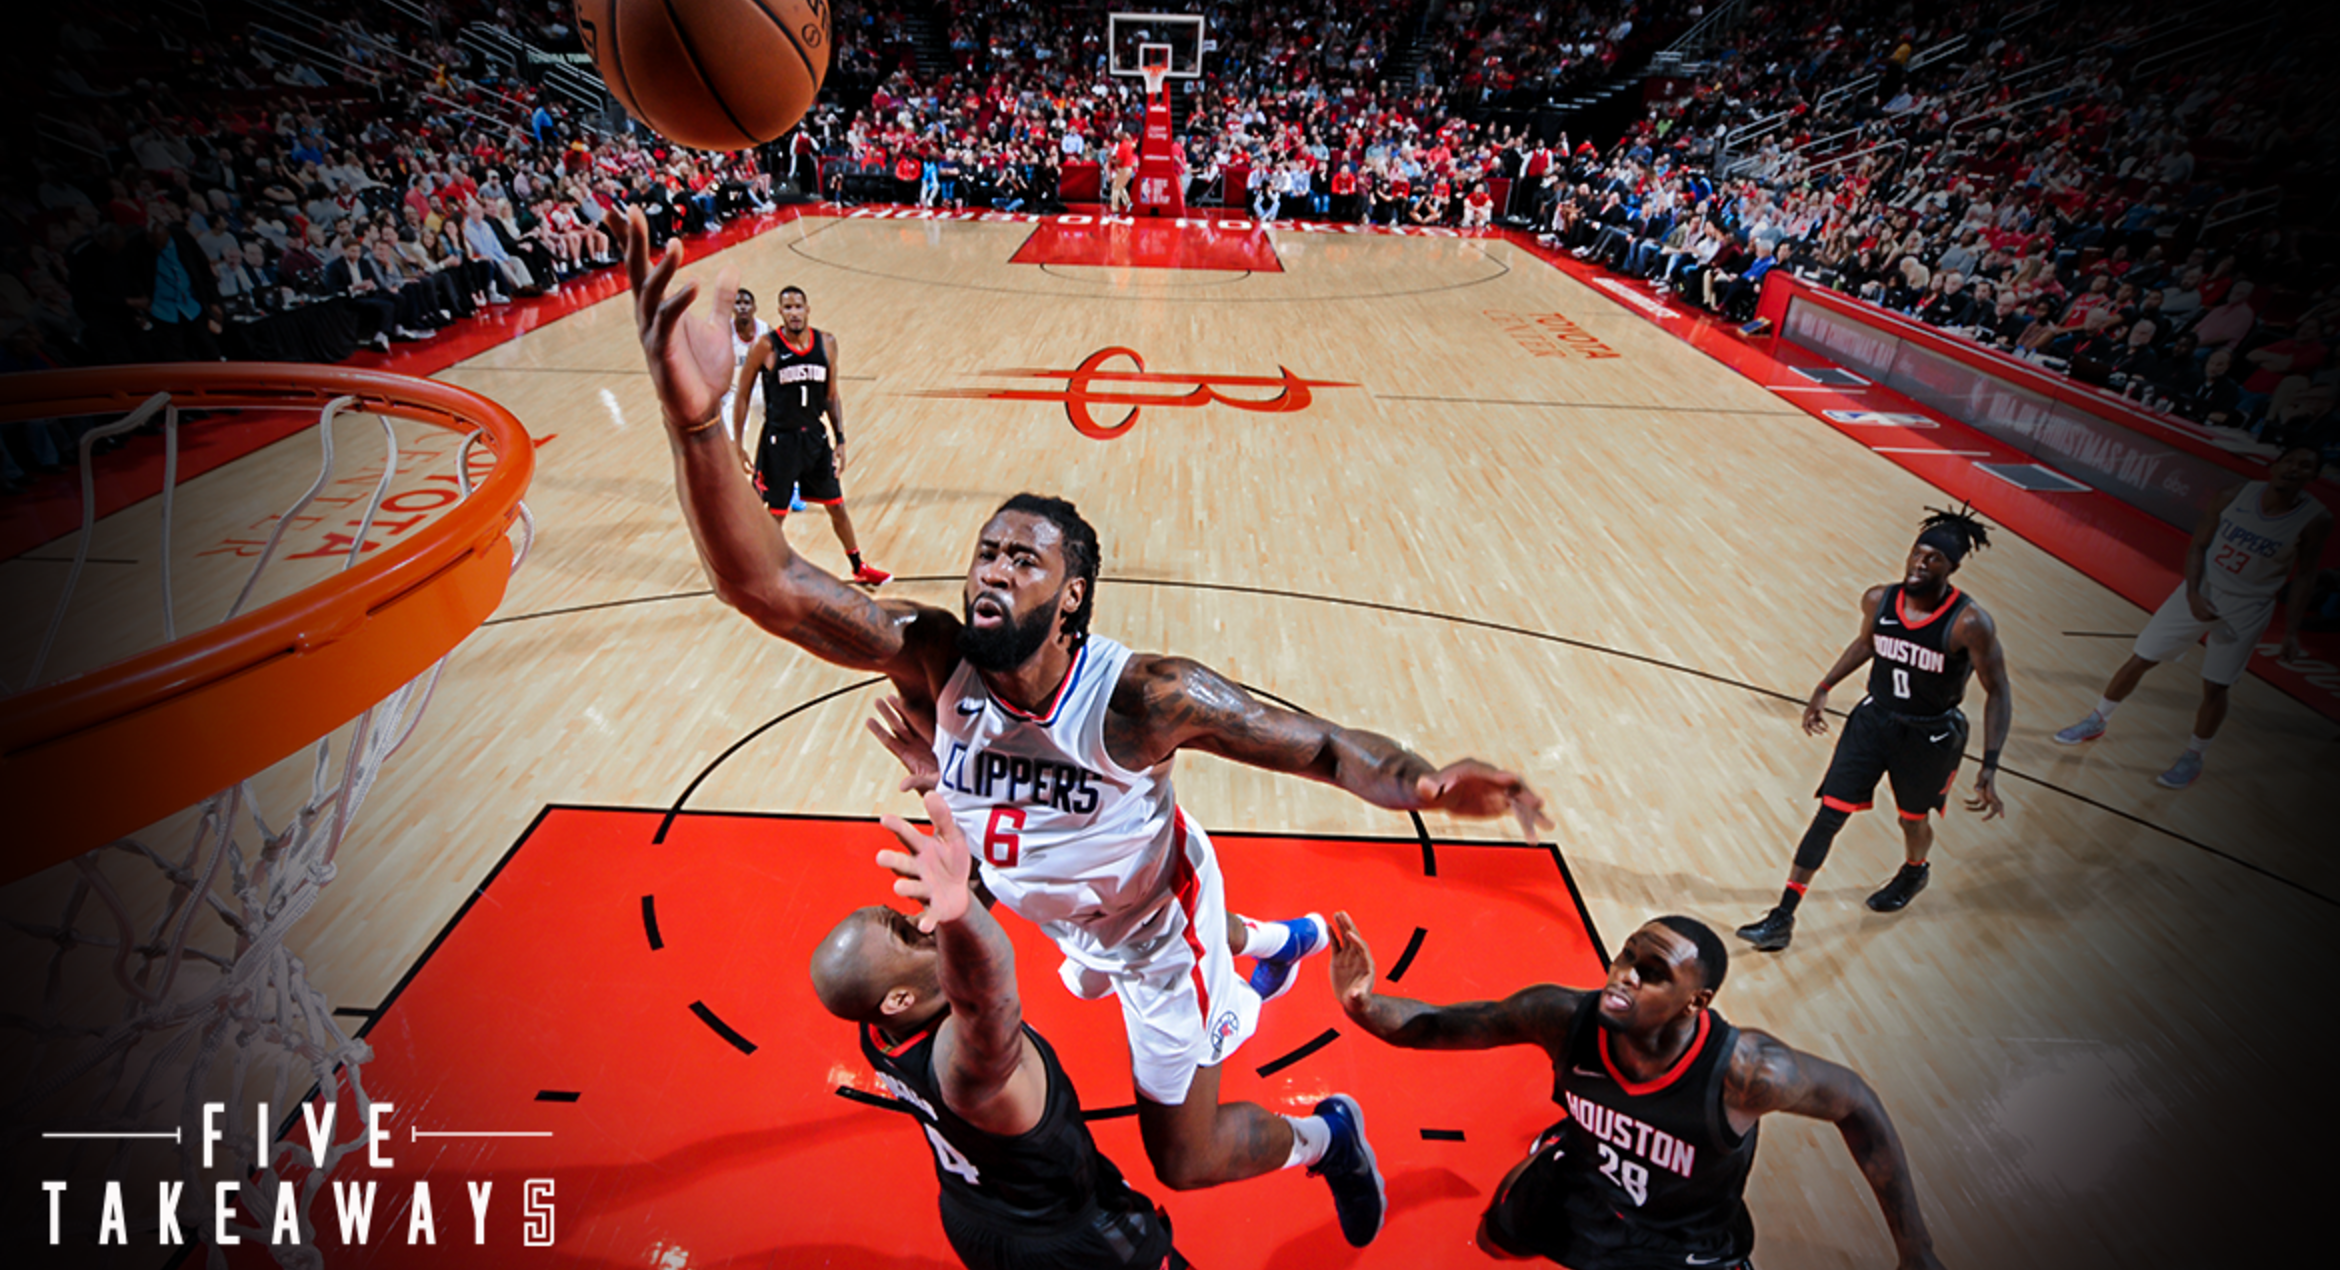 Five Takeaways: Strong second half pushes Clippers past Rockets